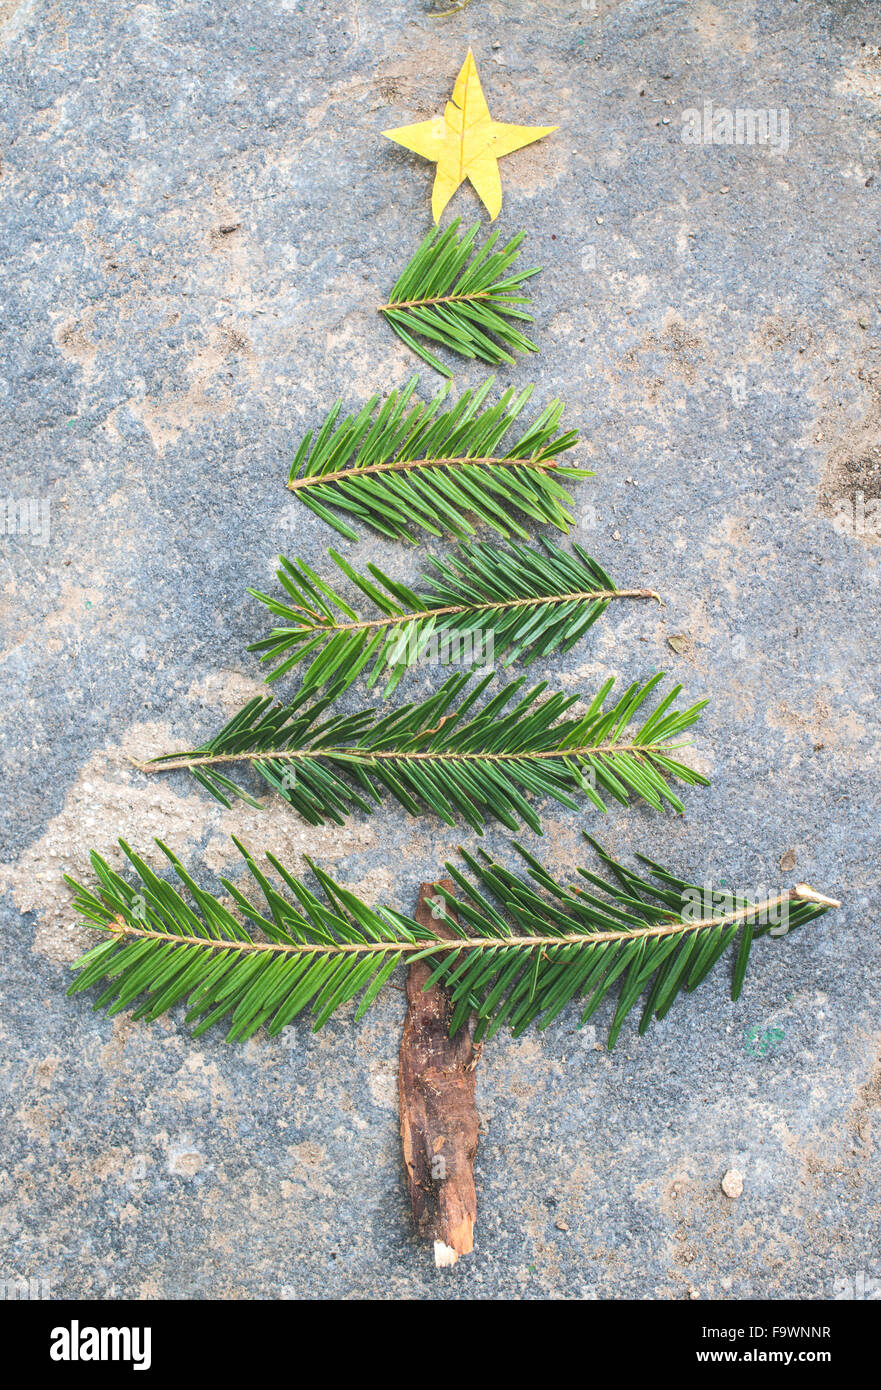 Pieces of fir branch, leaf and bark building shape of a Christmas tree - Stock Image